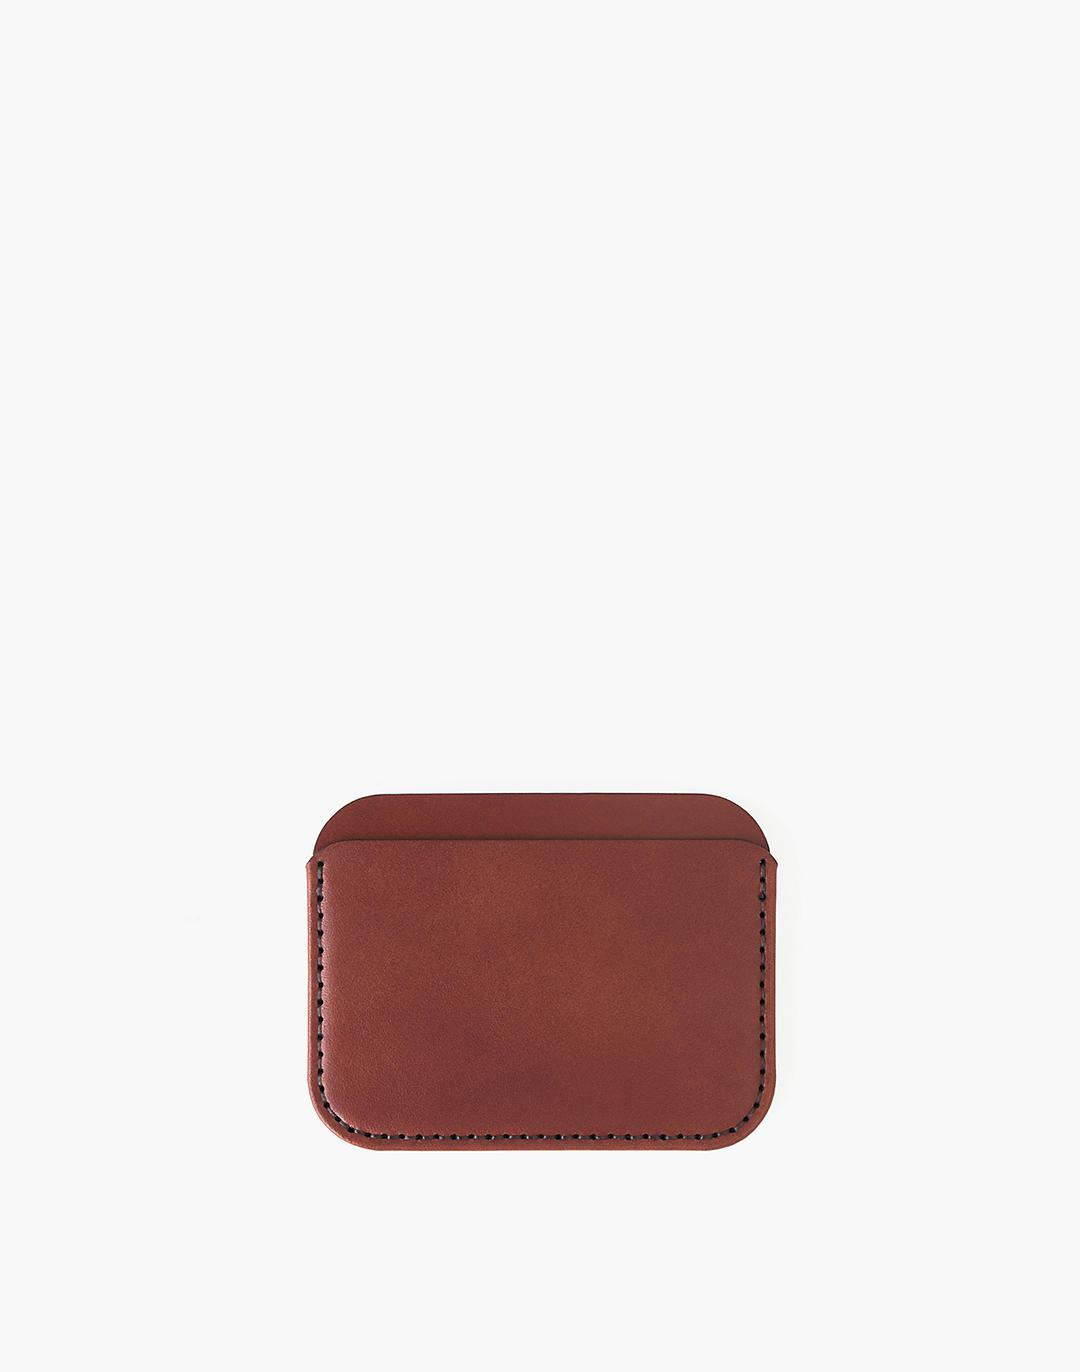 MAKR Leather Round Luxe Wallet